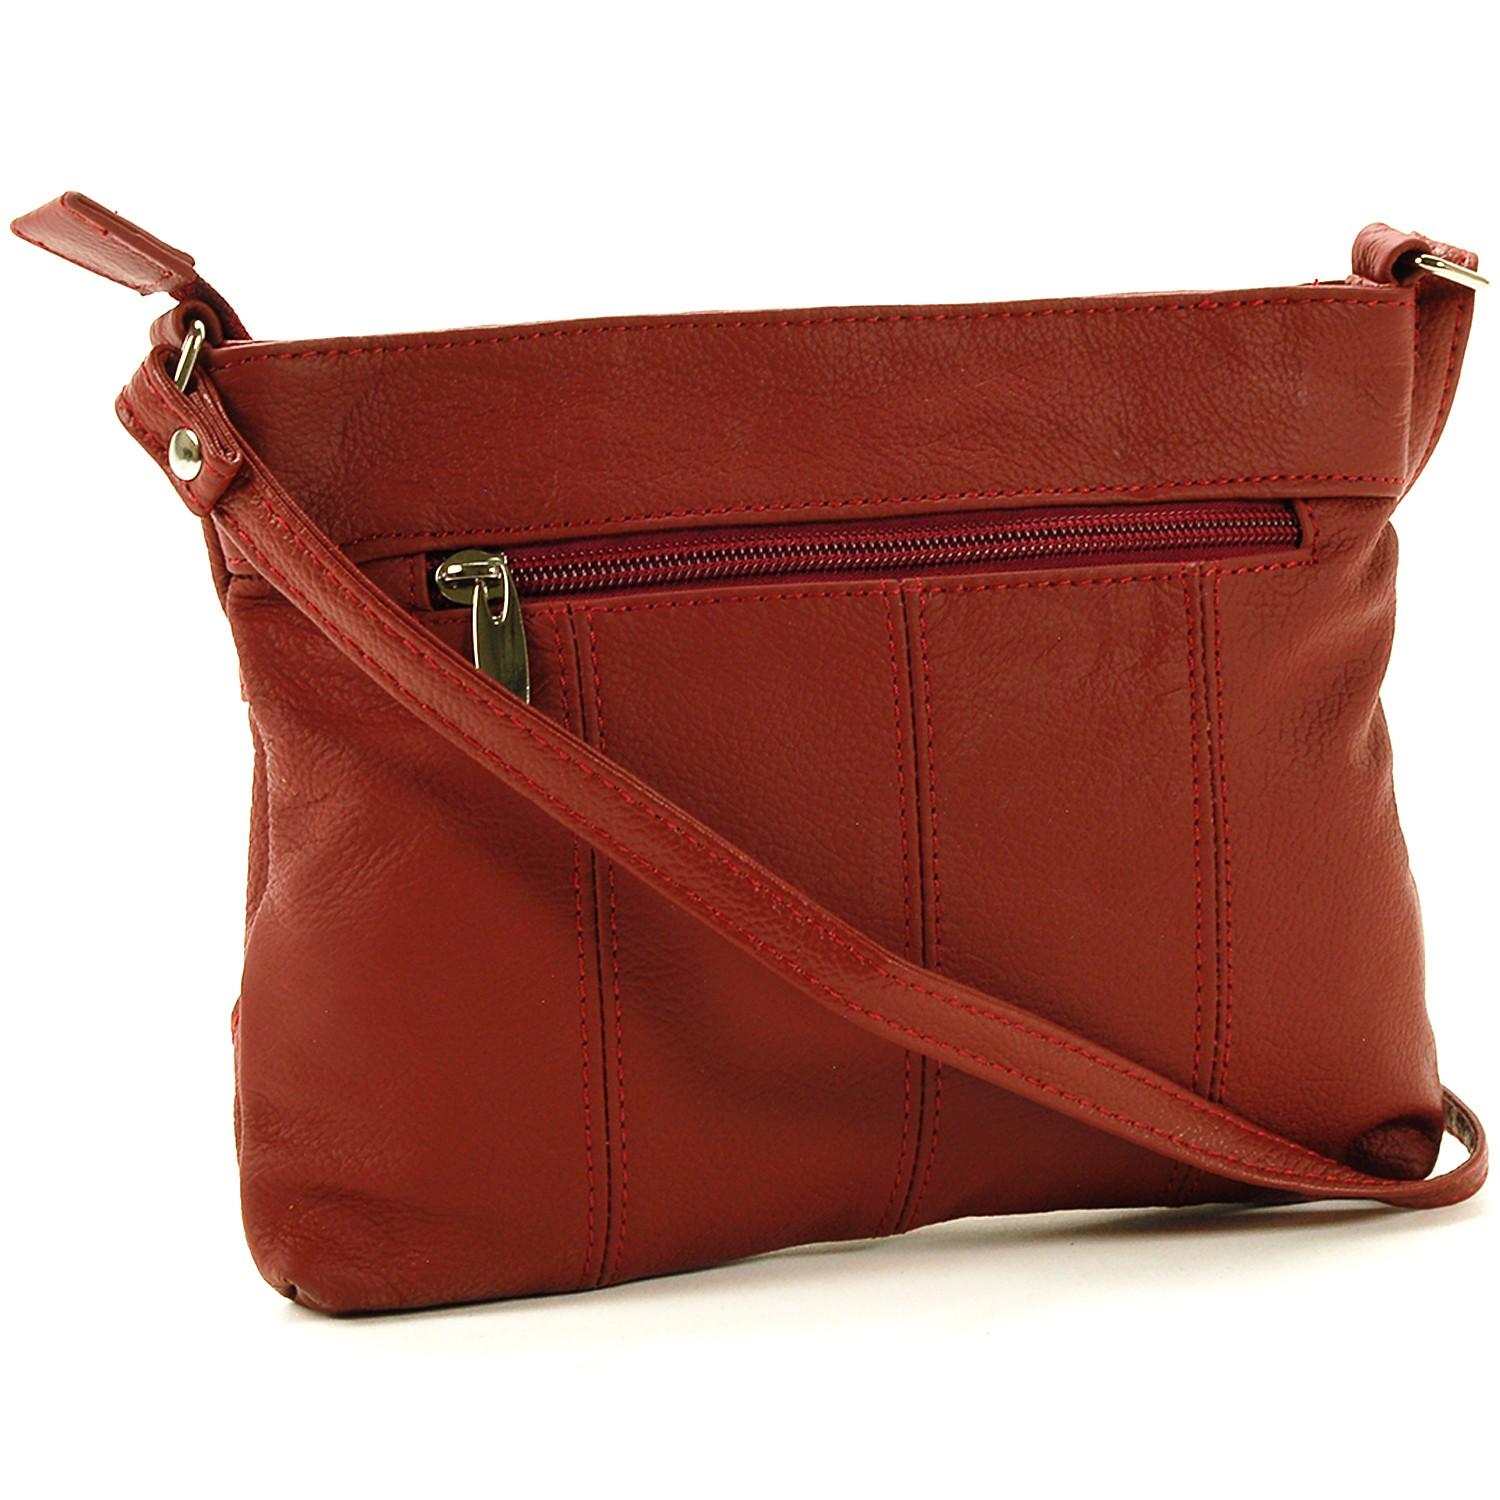 1fb43952cb Women s Genuine Leather Handbag Cross Body Bag Shoulder Bag ...